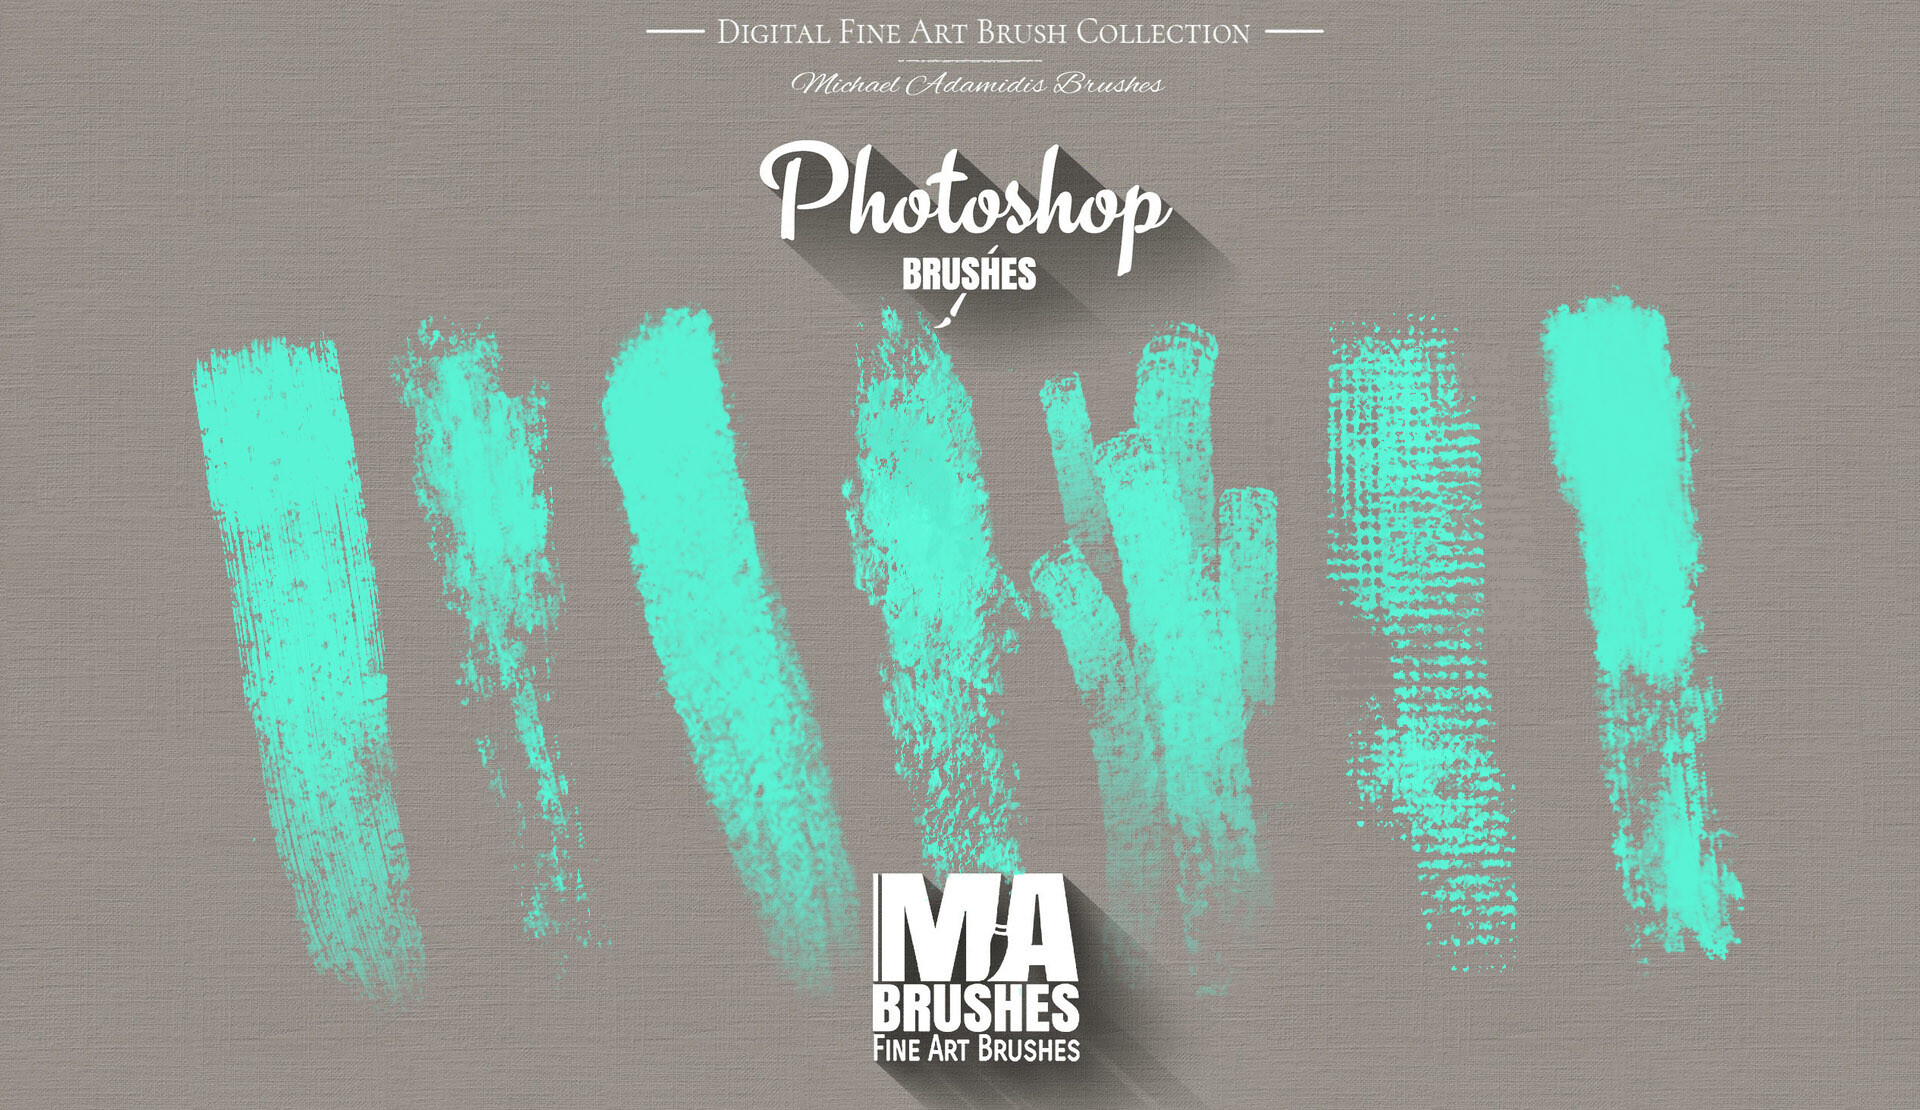 ArtStation - Photoshop Oil Brushes - Painting Texture Brush Pack, MA